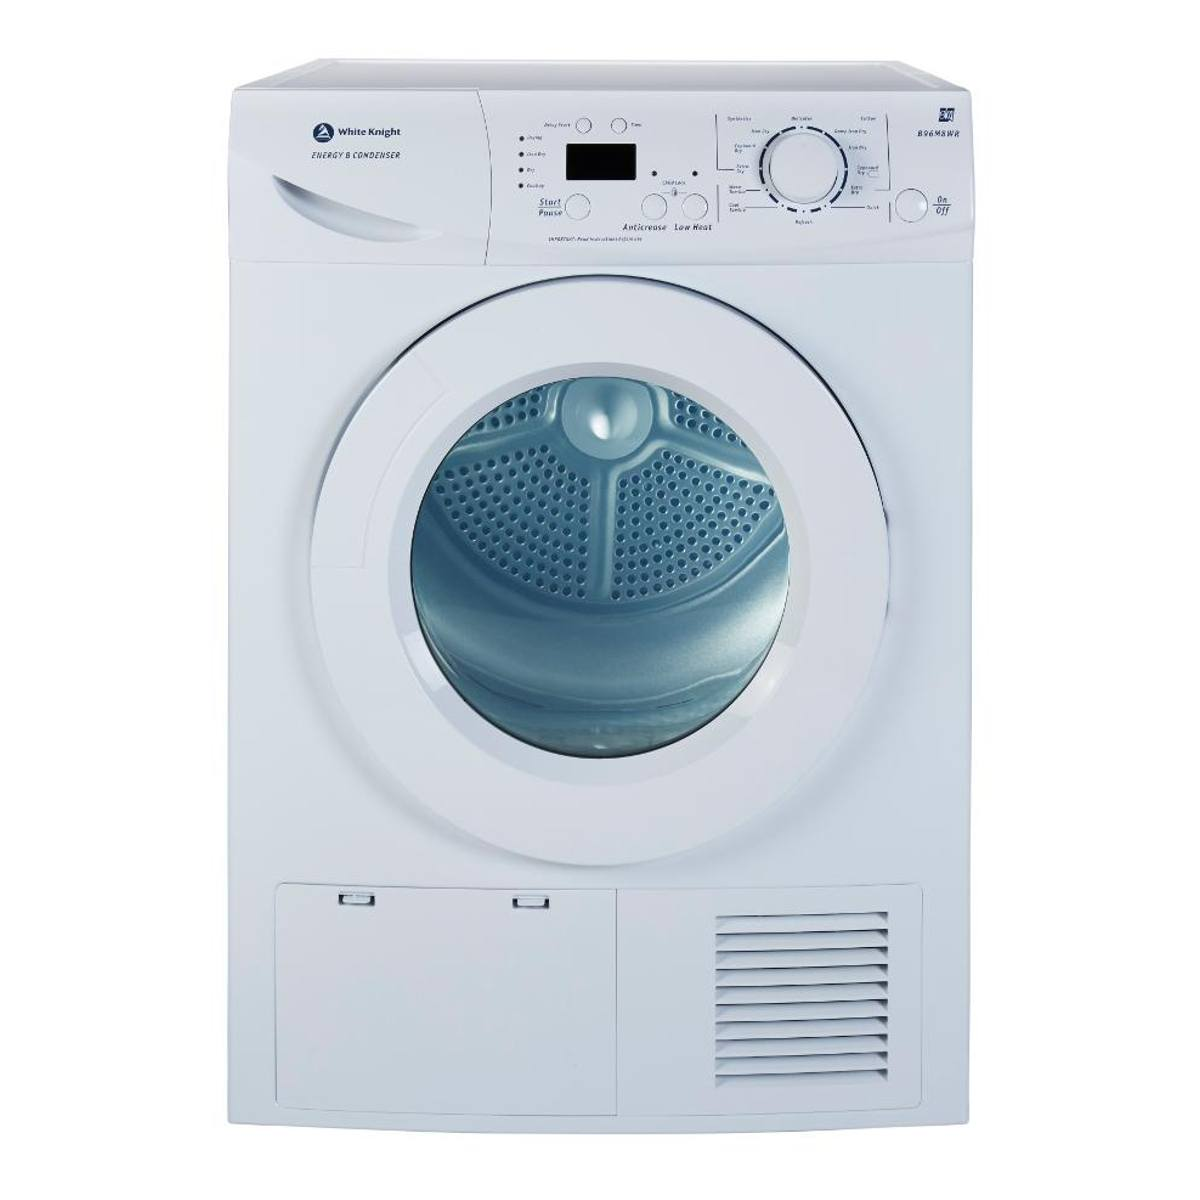 White Knight B96m8wr 8kg Condenser Tumble Dryer White